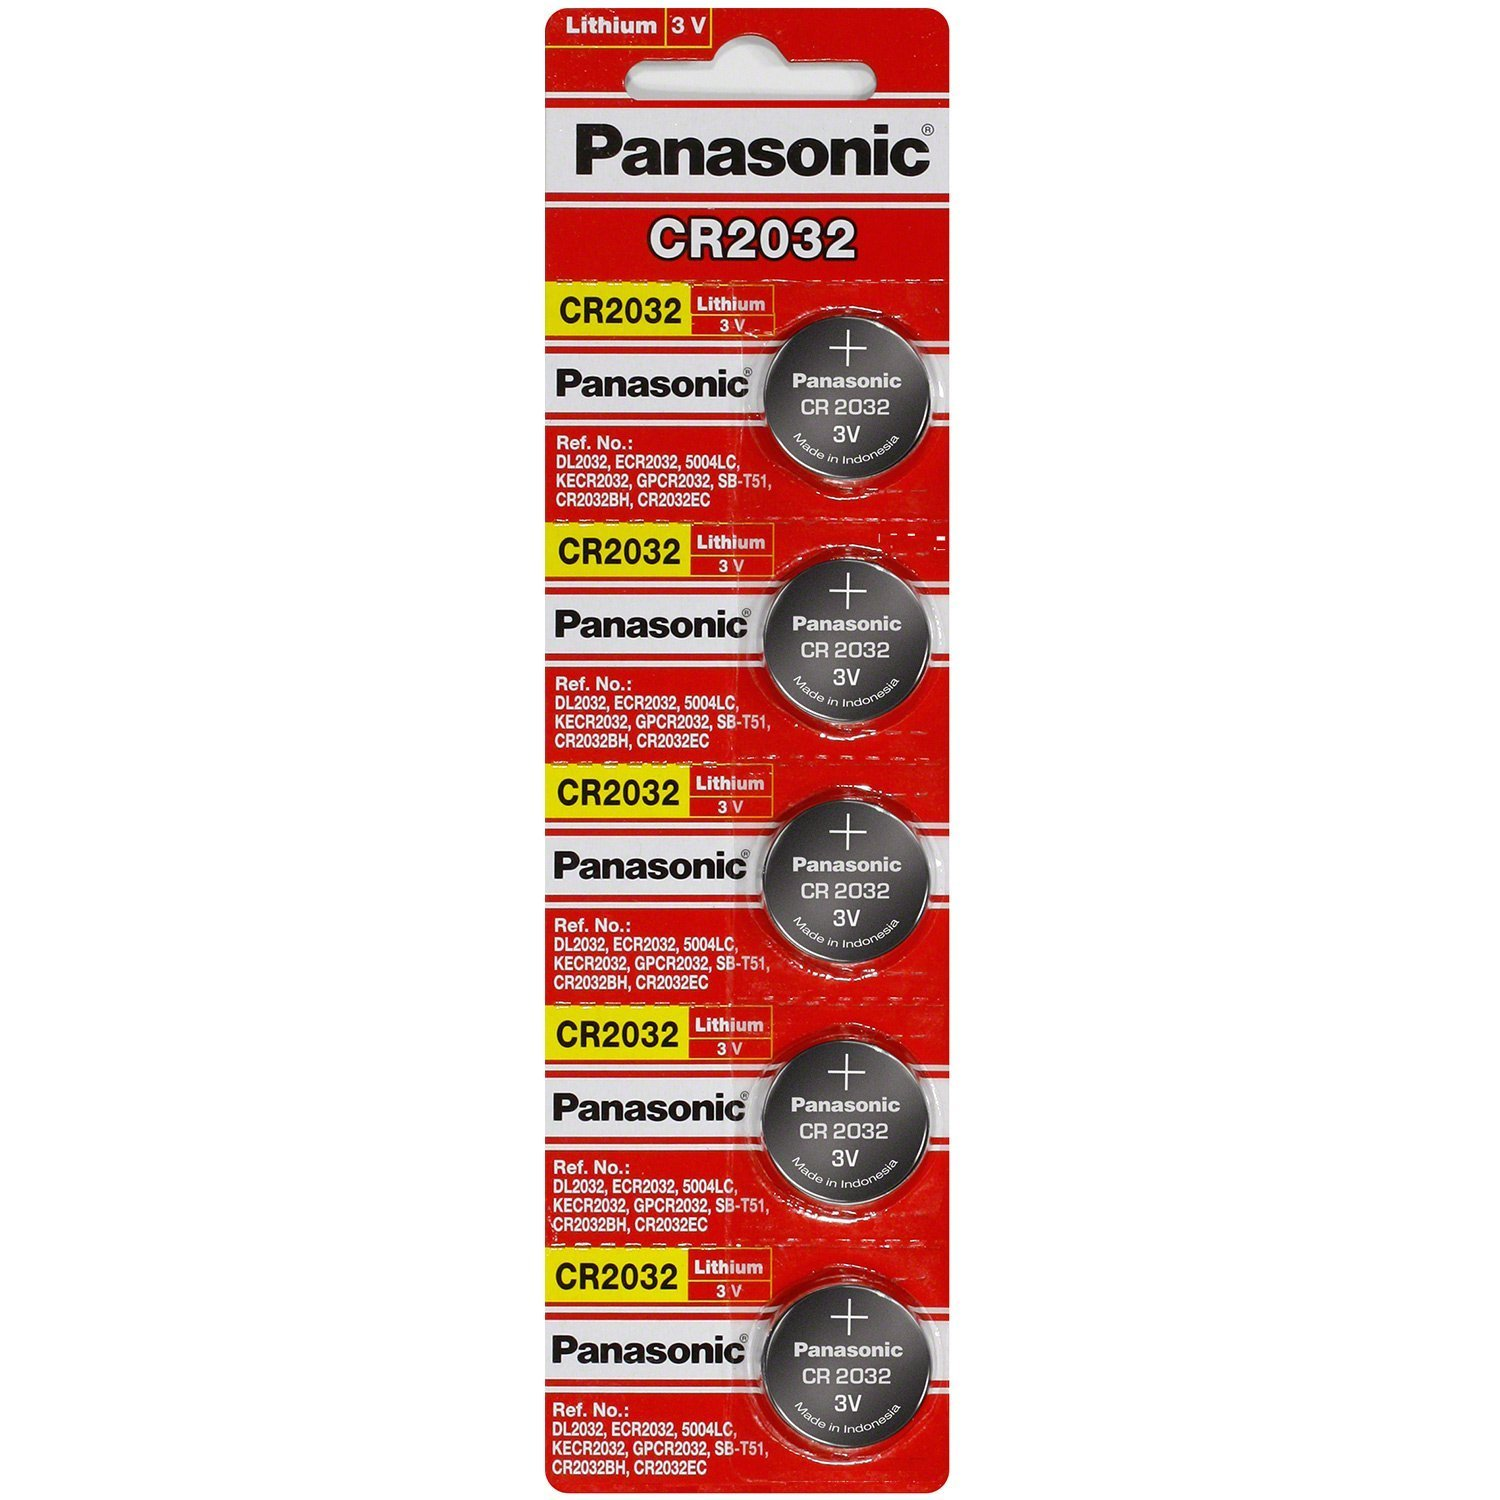 Free shipping amazon code - Amazon Com Panasonic Cr2032 3 Volt Lithium Battery Retail Blister Pack Home Improvement